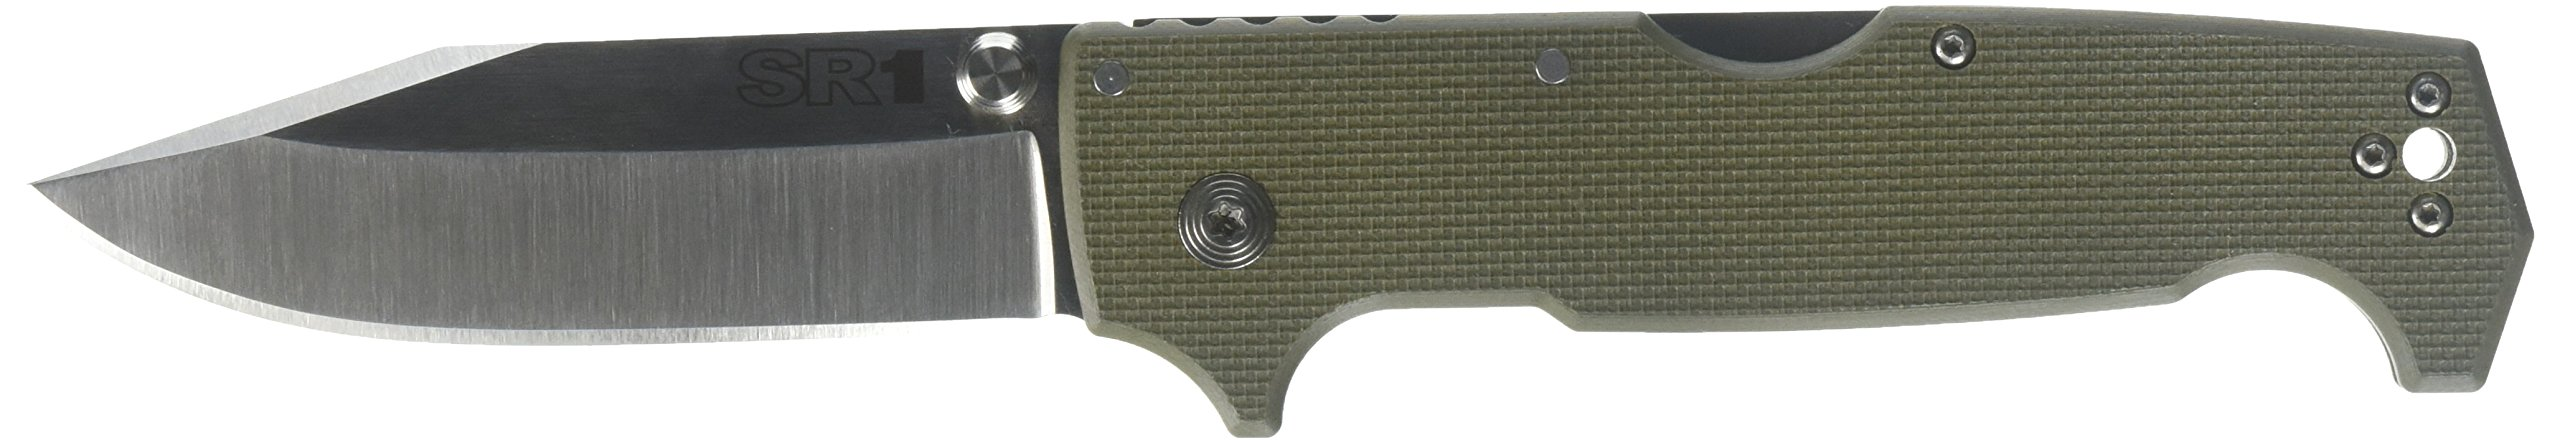 Cold Steel SR1 Knife, OD Green, 4-1/2''